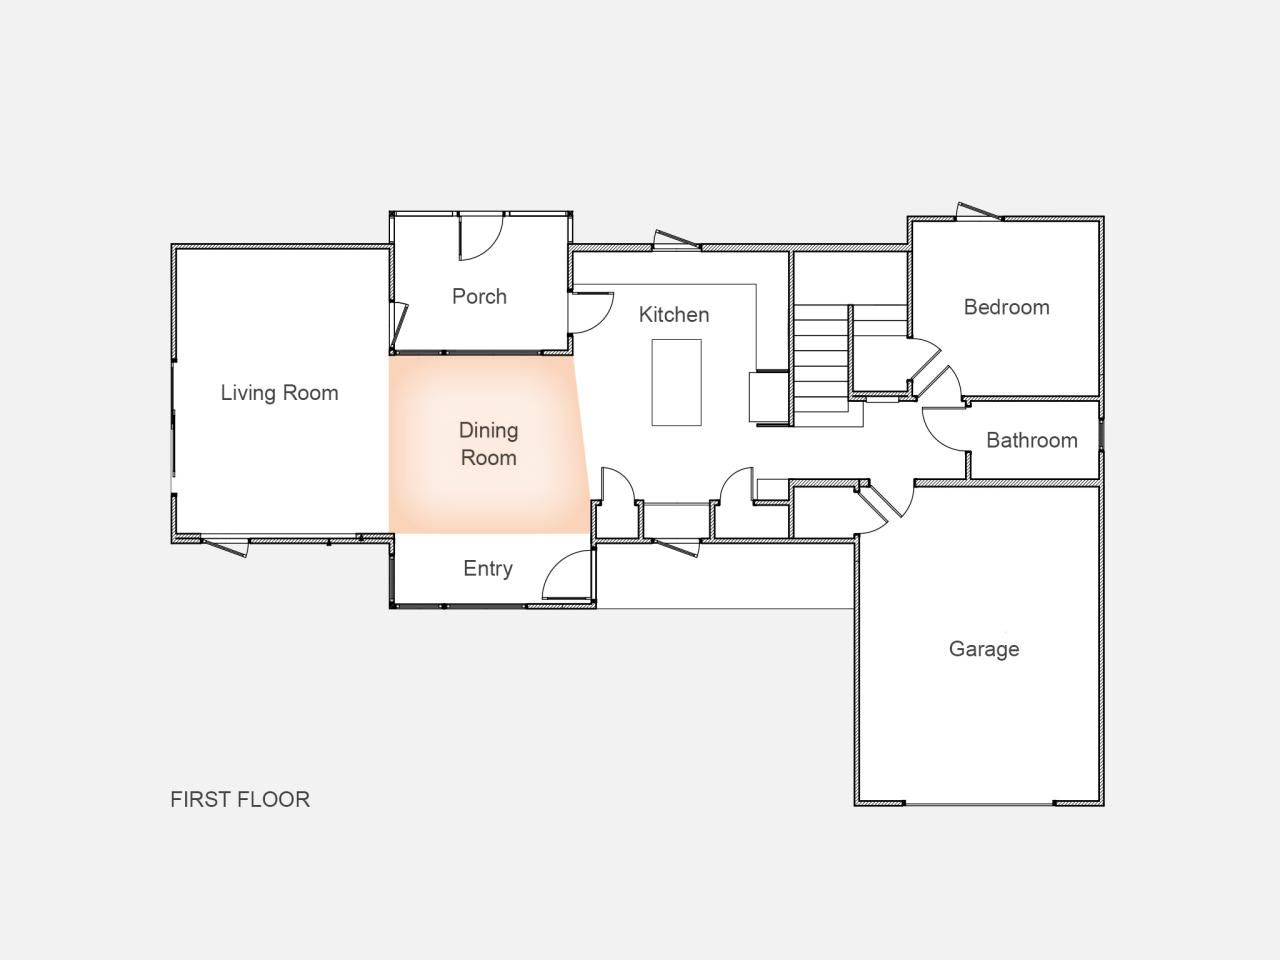 Hgtv Smart Home 2015 Before And After Building Hgtv Smart Home 2015 Hgtv Smart Home Floor Plans Home Design Plans